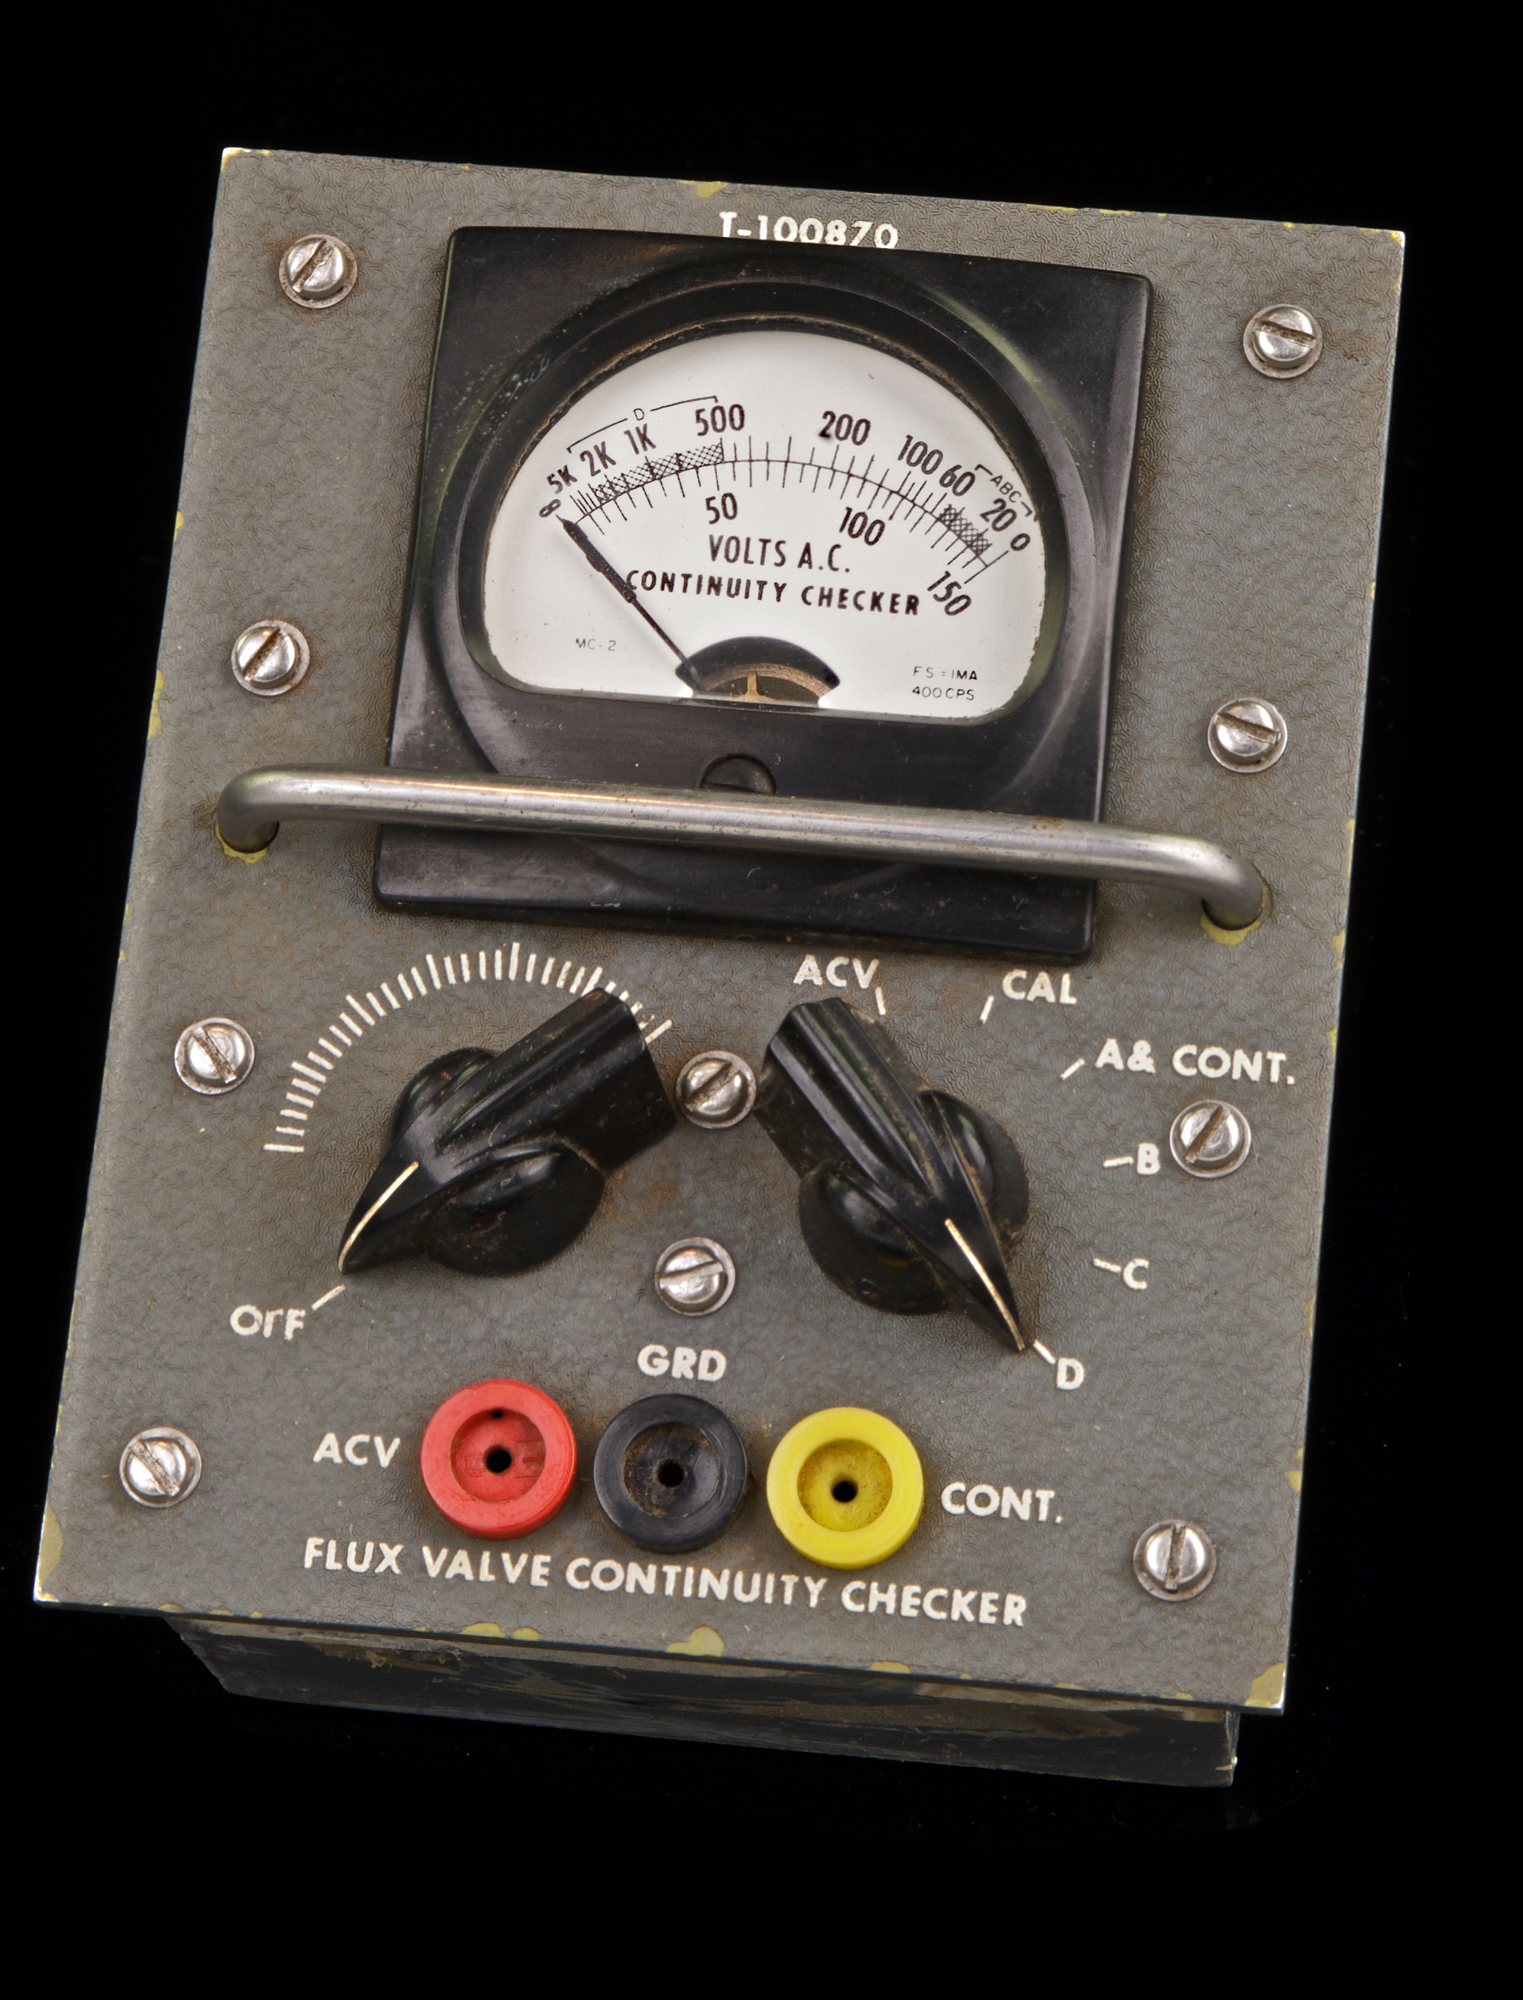 FLUX VALVE CONTINUITY TESTER T-100870